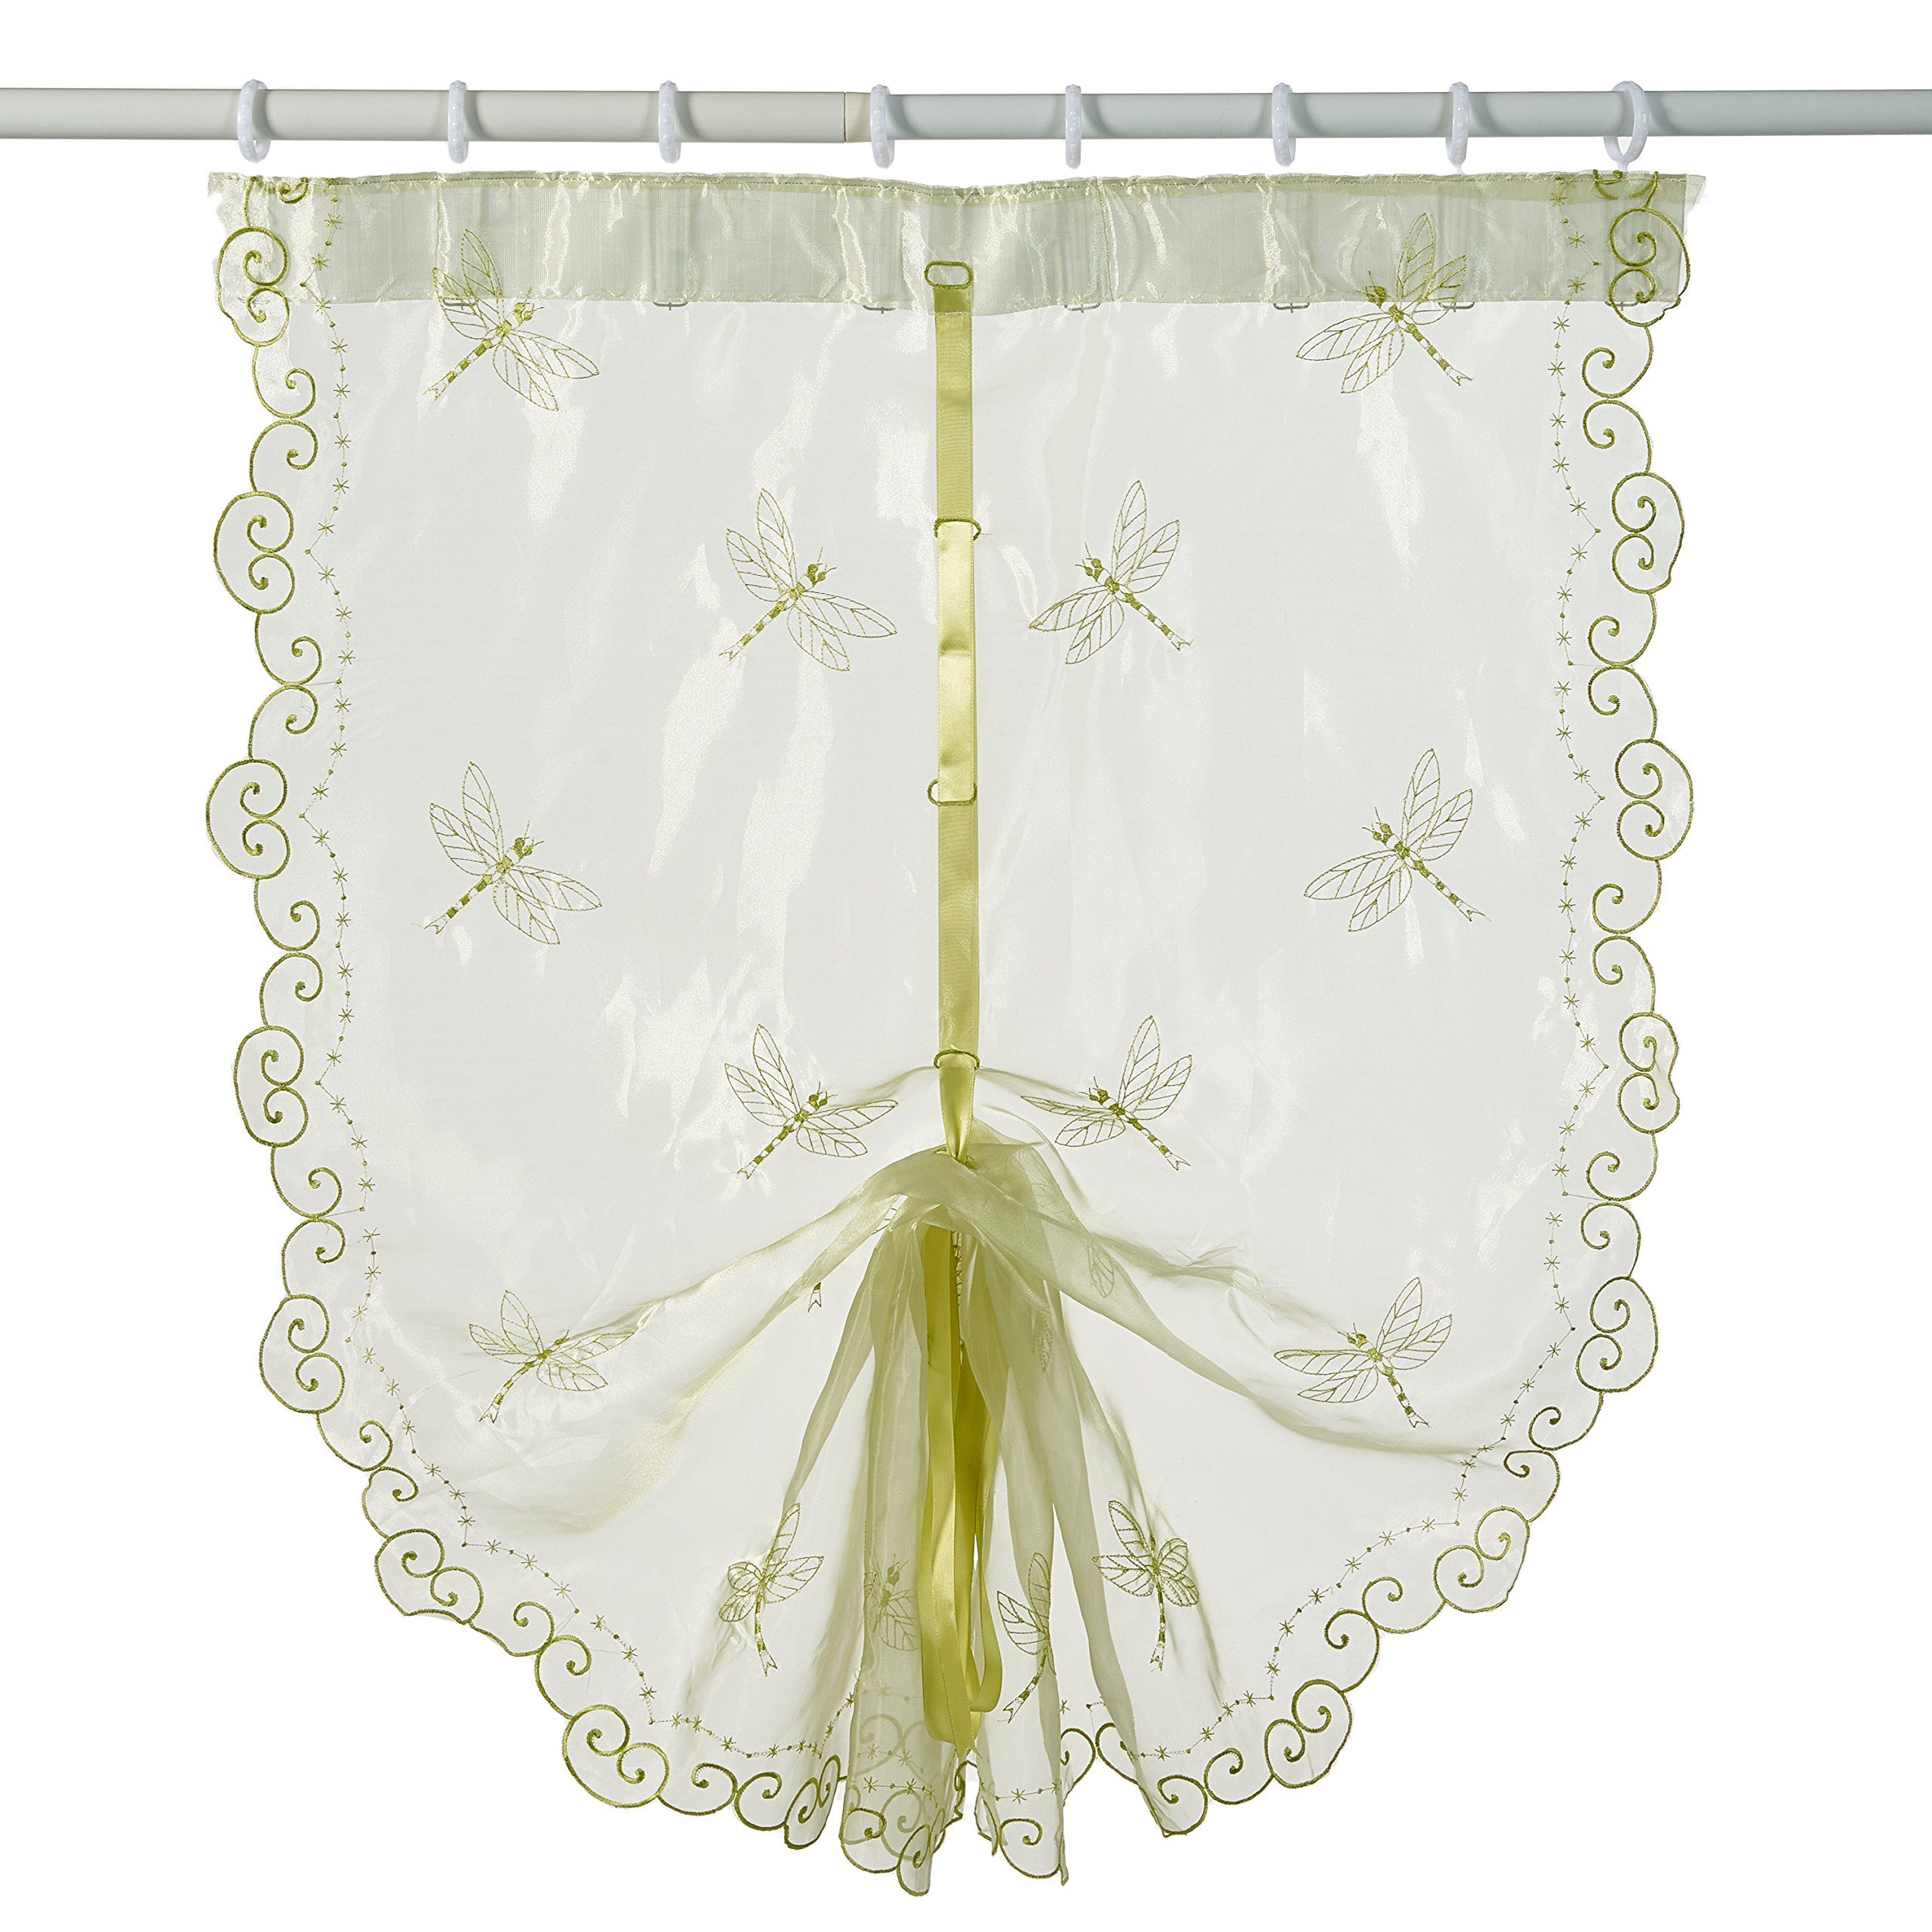 Best Dragonfly Embroidery Polyester Tie-Up Window Shade Balcony Window Drape Panel Scarf Valances Curtain Light Green 33''W x 57''H